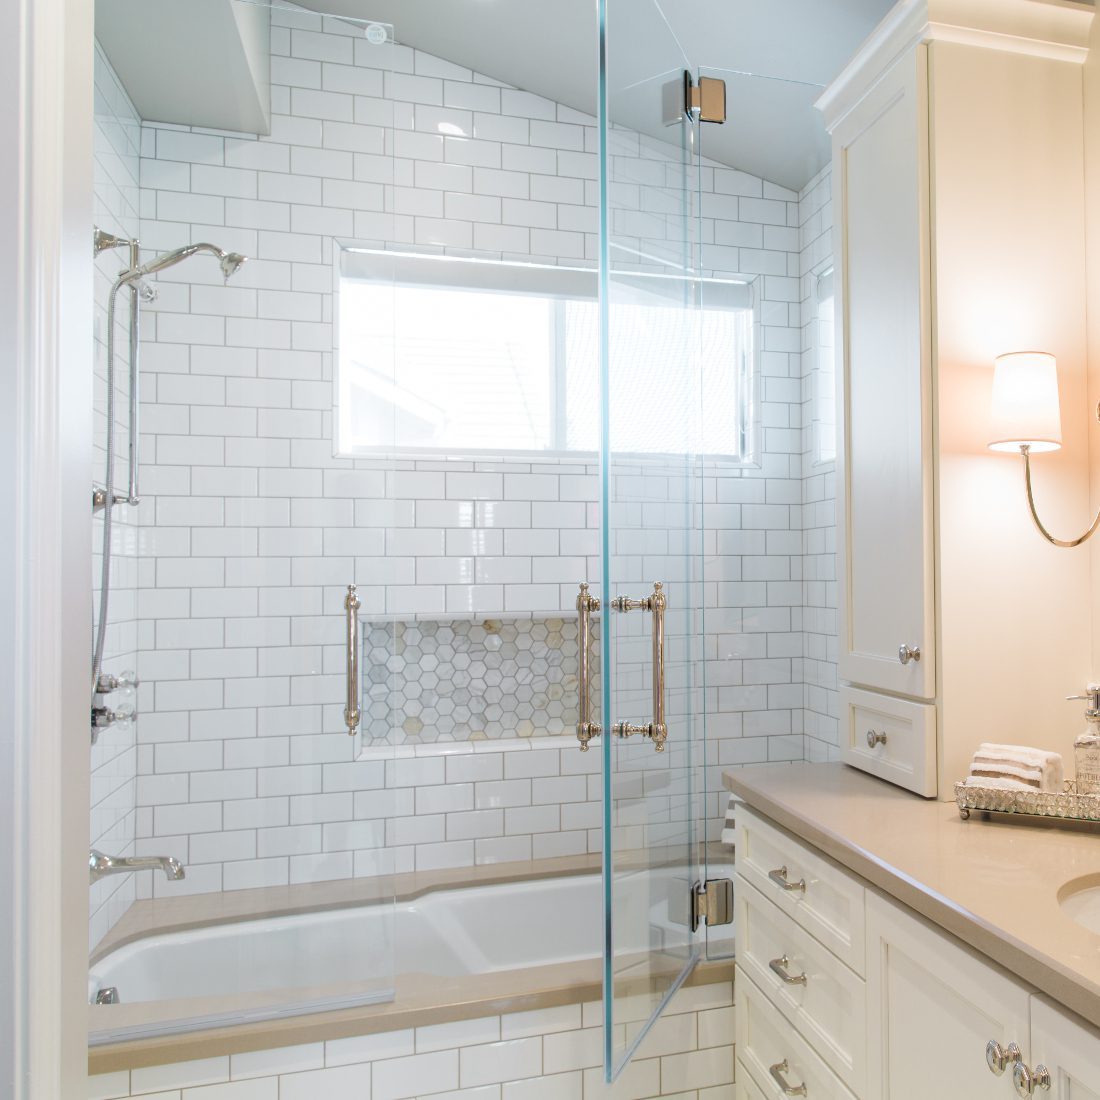 Bathroom Remodeling Checklist | Case Design/Remodeling of San Jose